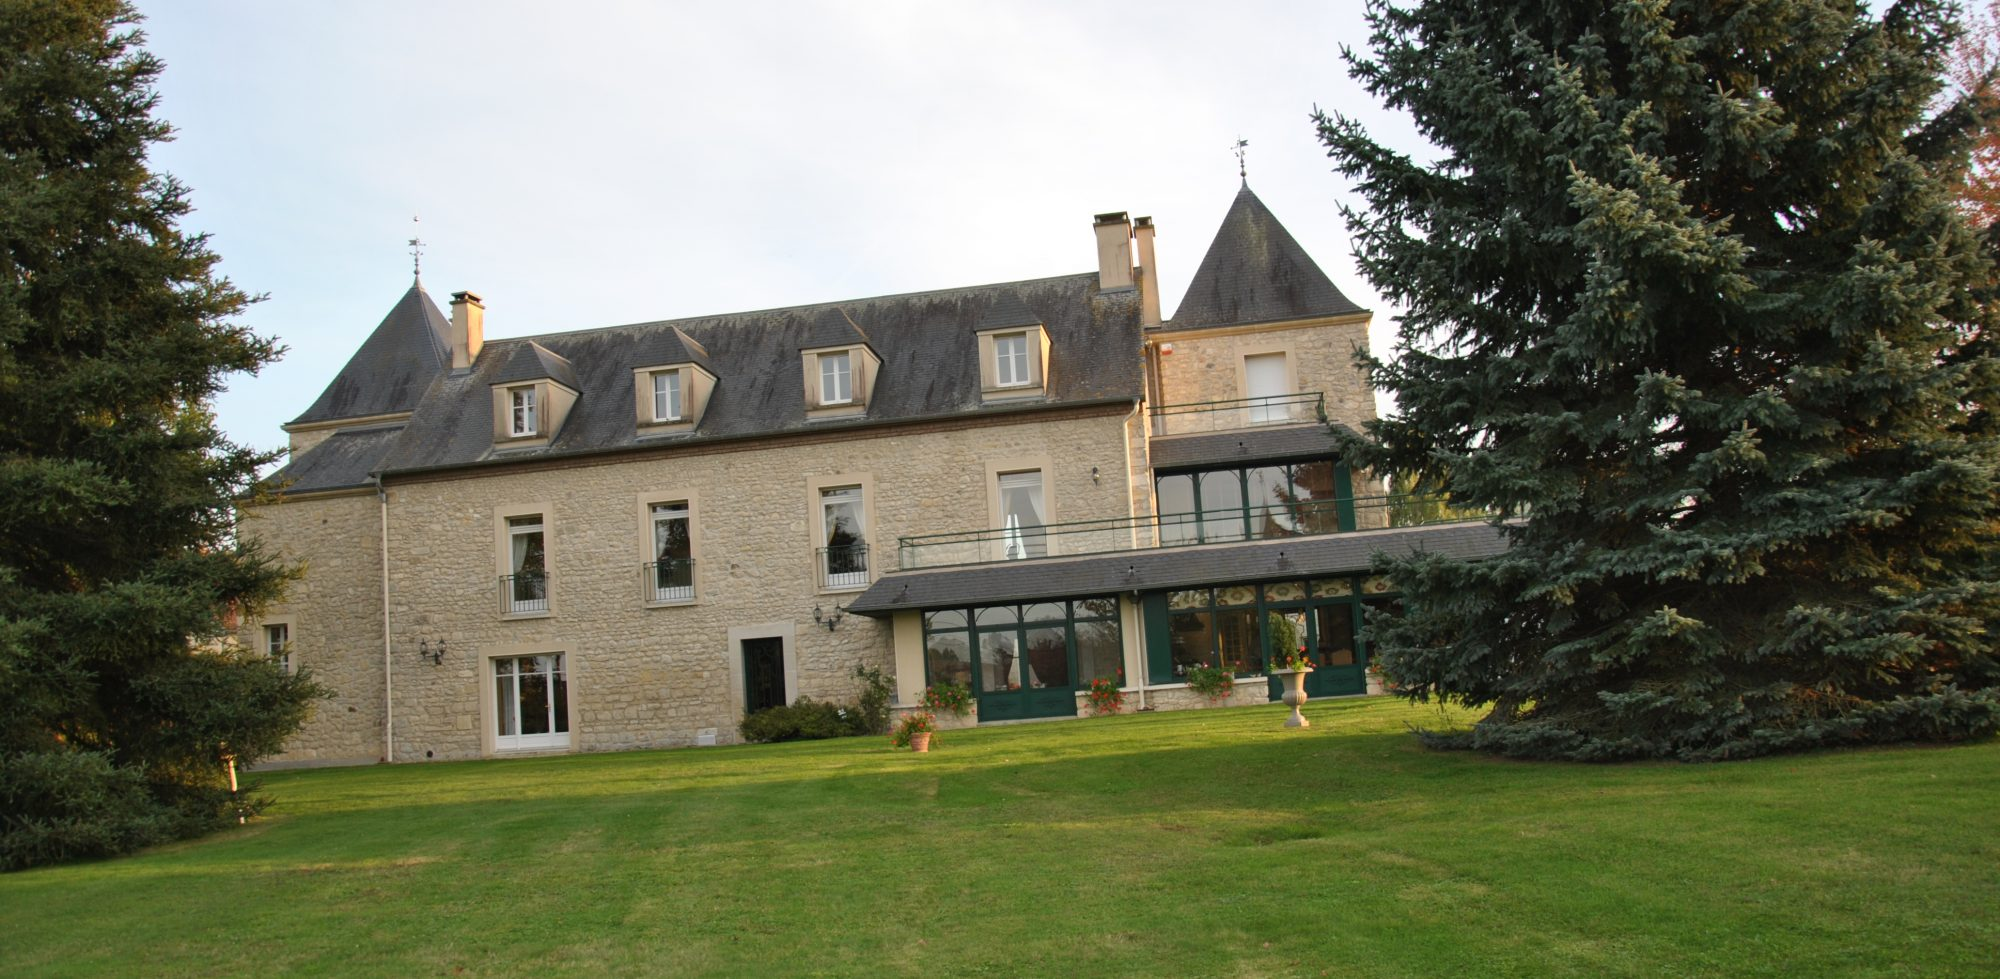 Agence immobili re claire waida reims immobilier reims for Agence paysage reims